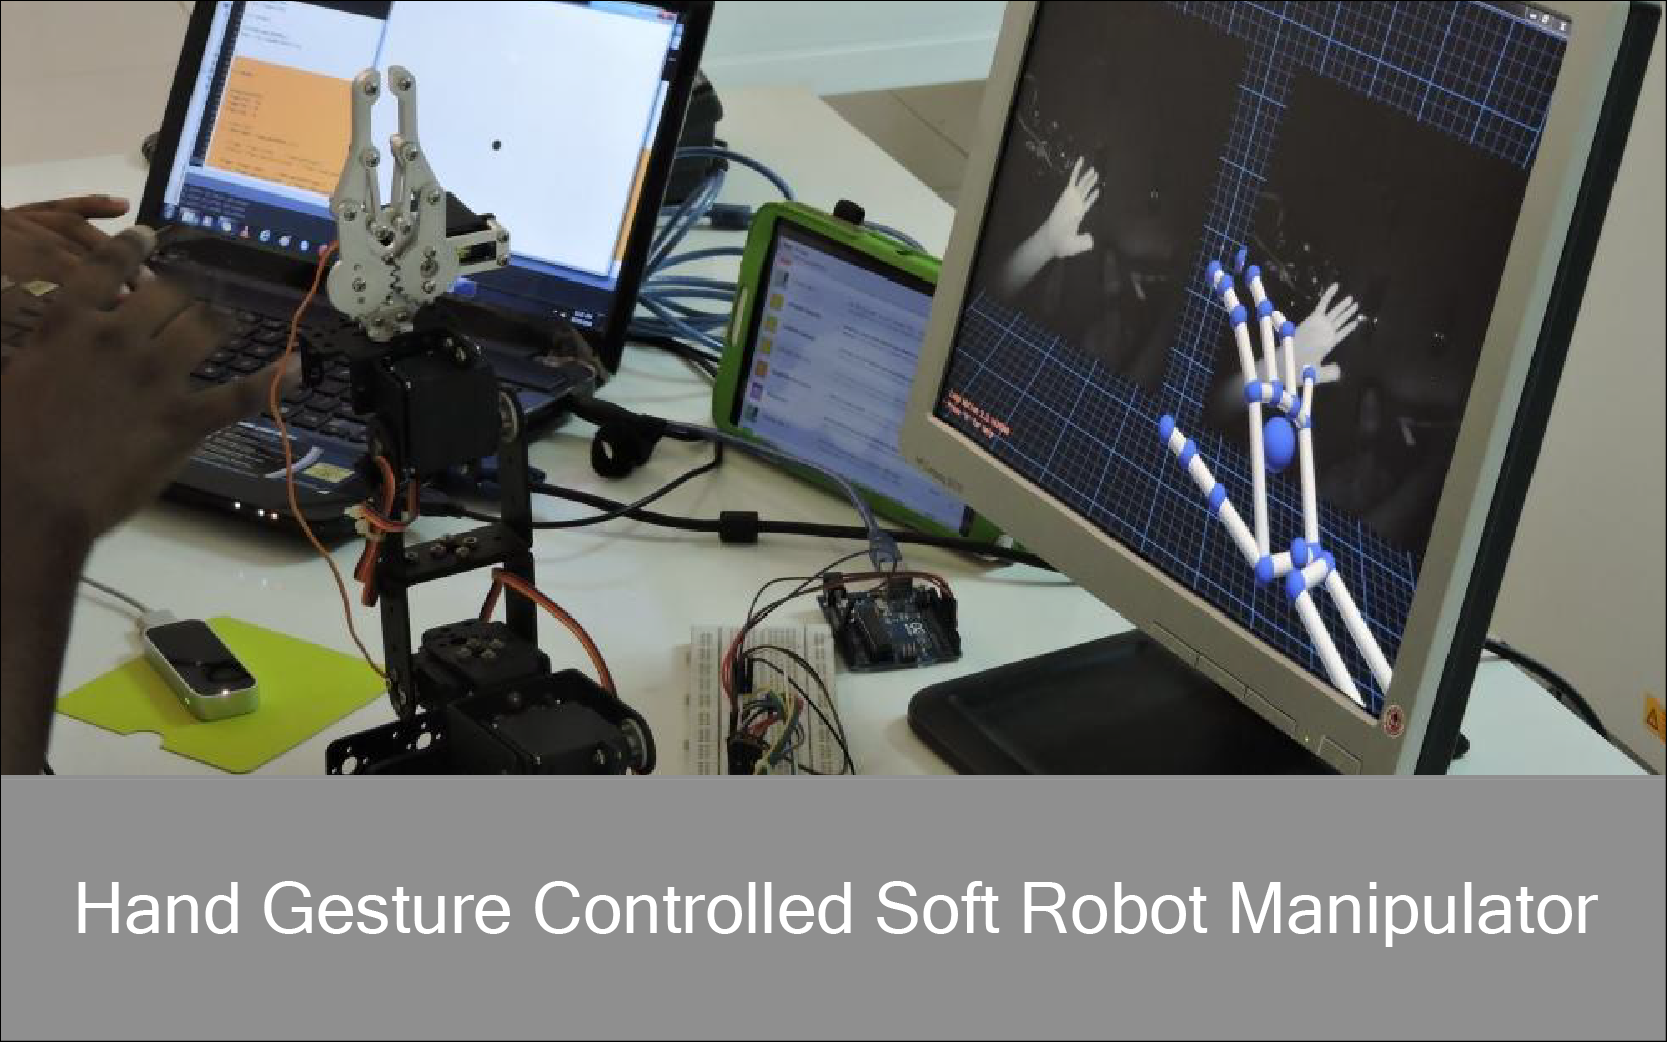 hand_gesture_controlled_soft_robot_manipulator-01.png